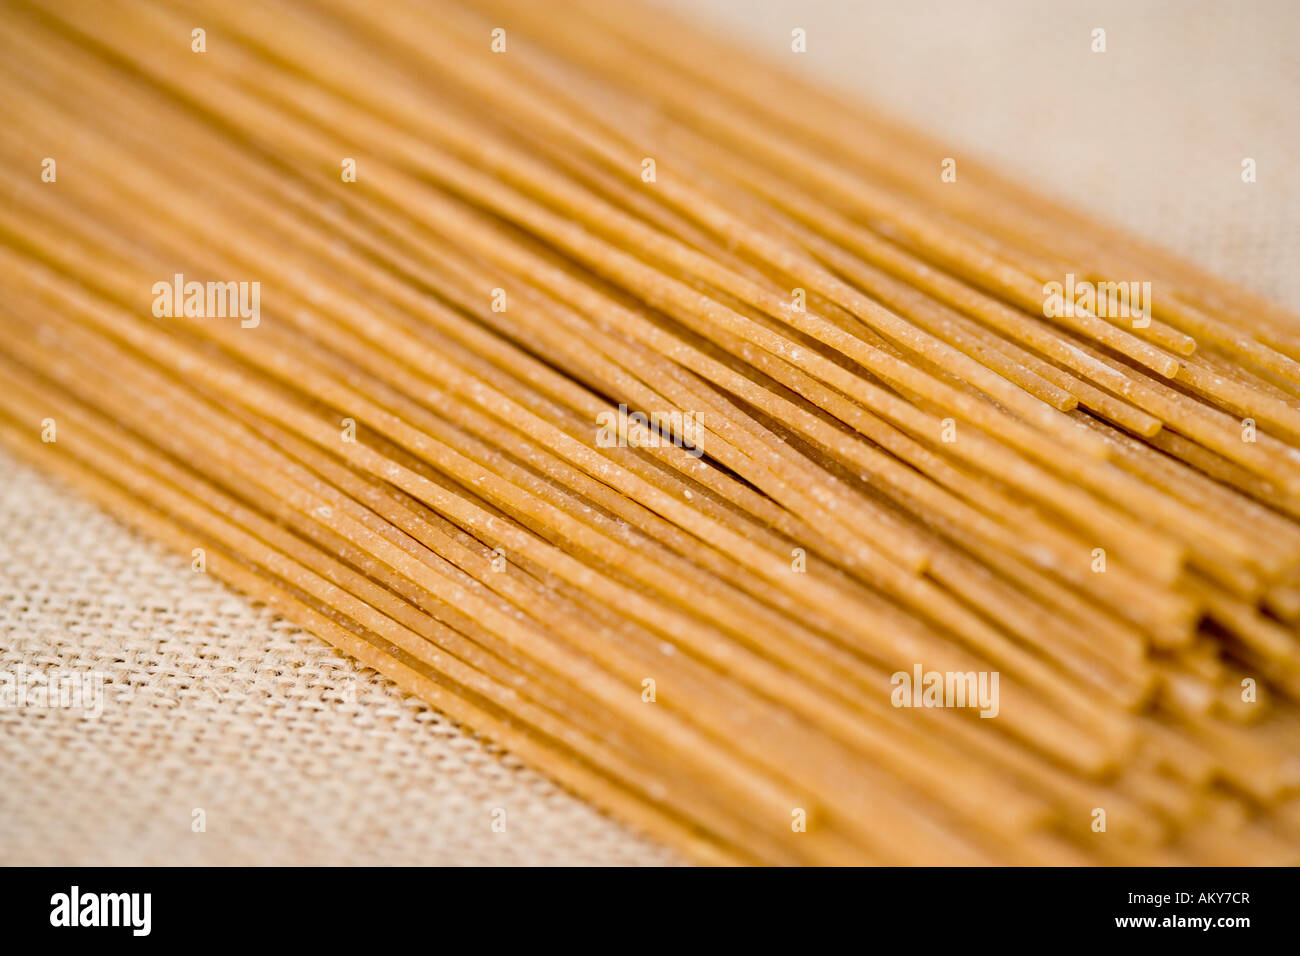 Wholewheat dry spaghetti pasta in detailed close up - Stock Image